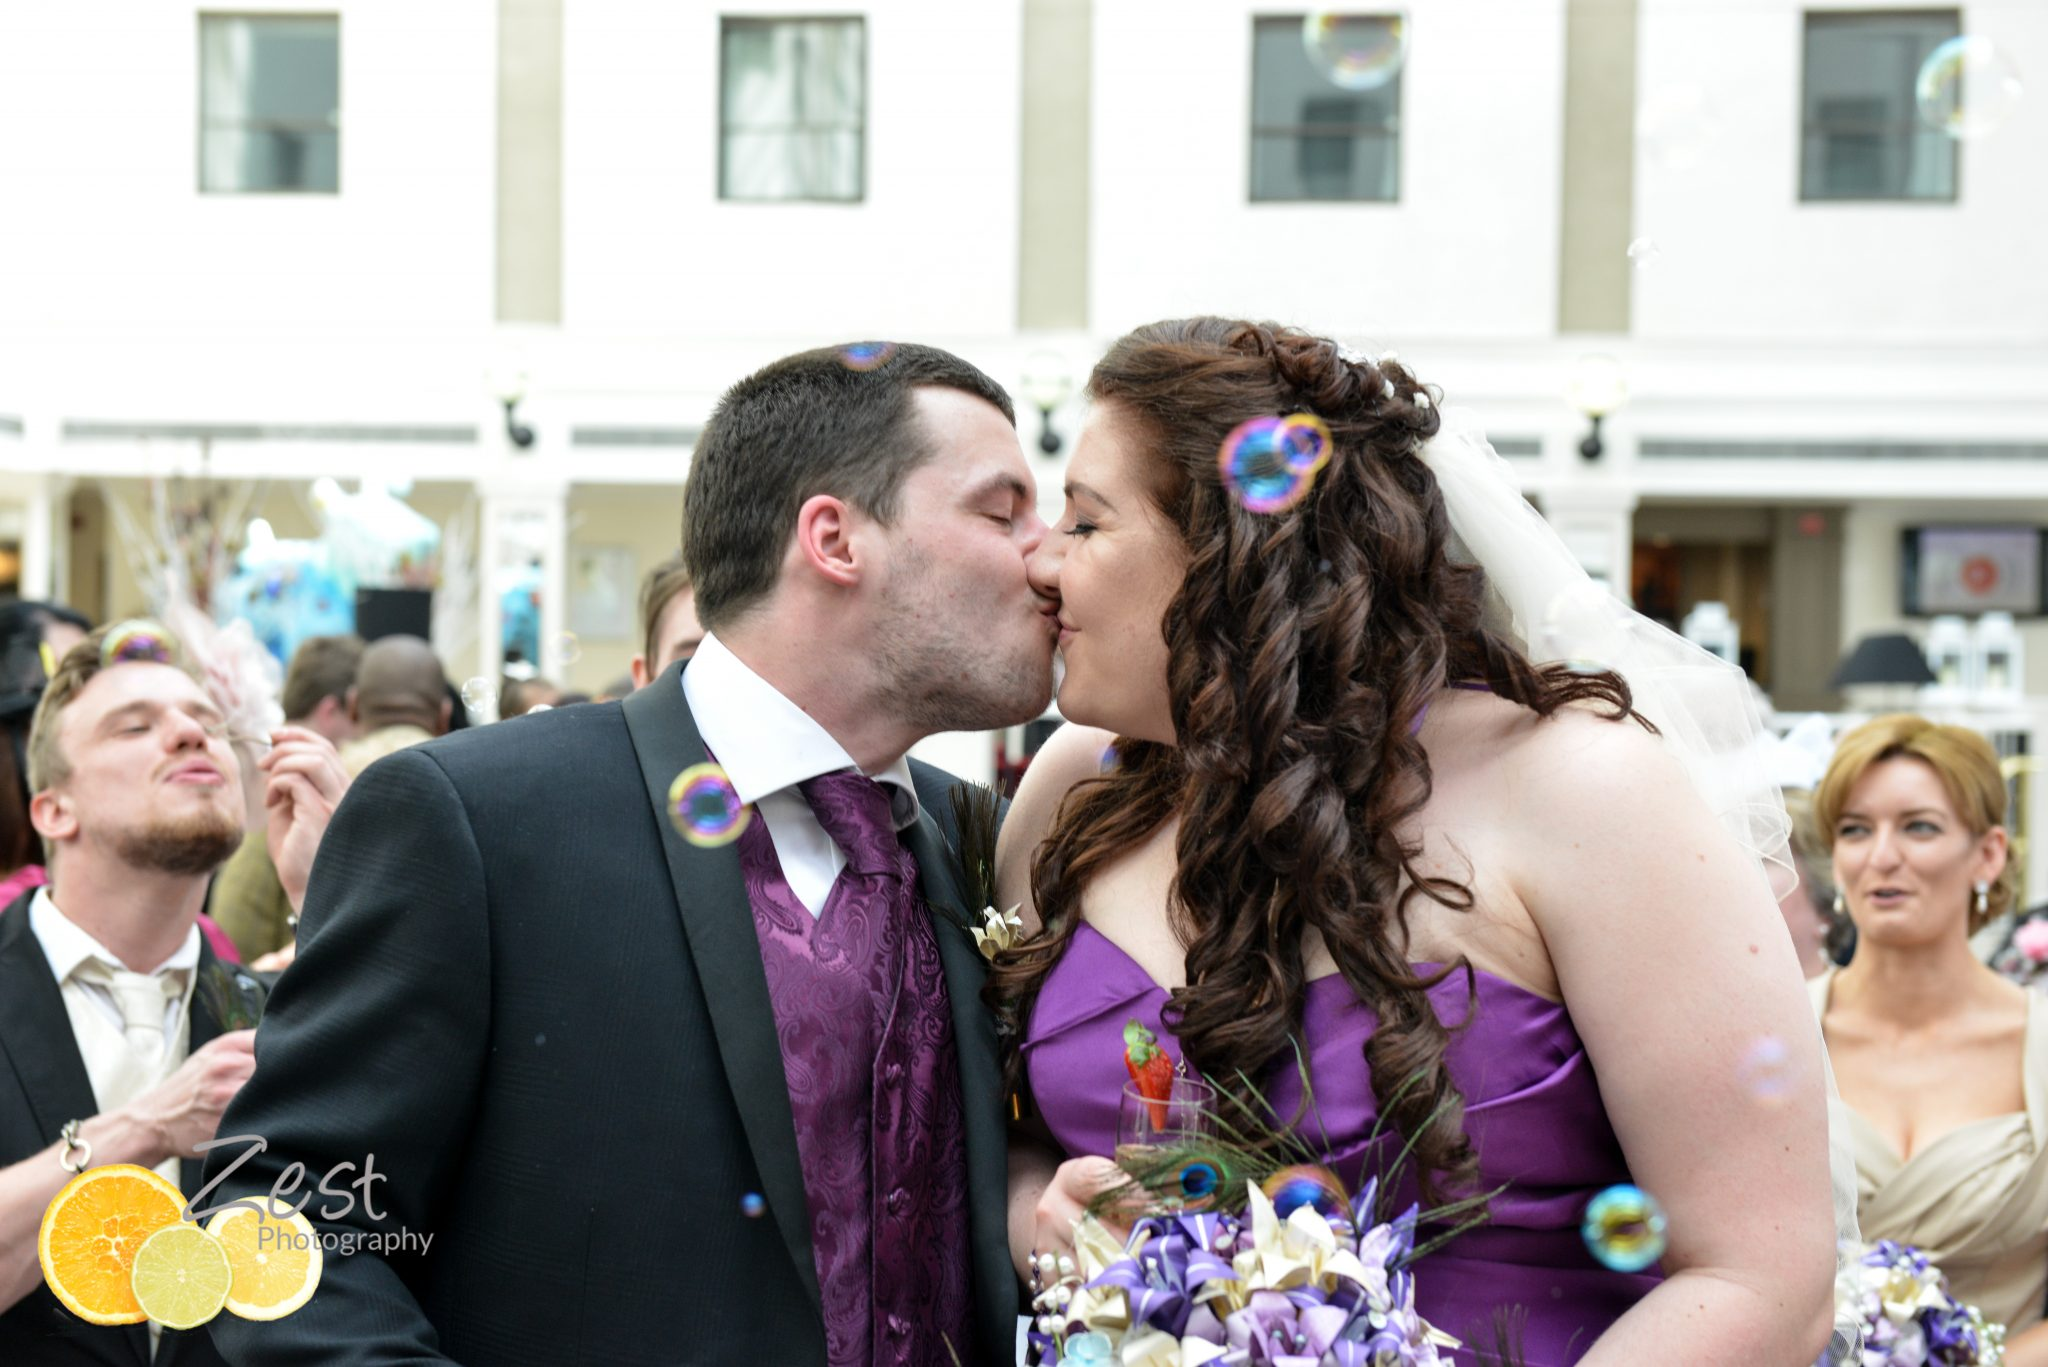 newliwed couple at jurys inn, brighton in purple dress